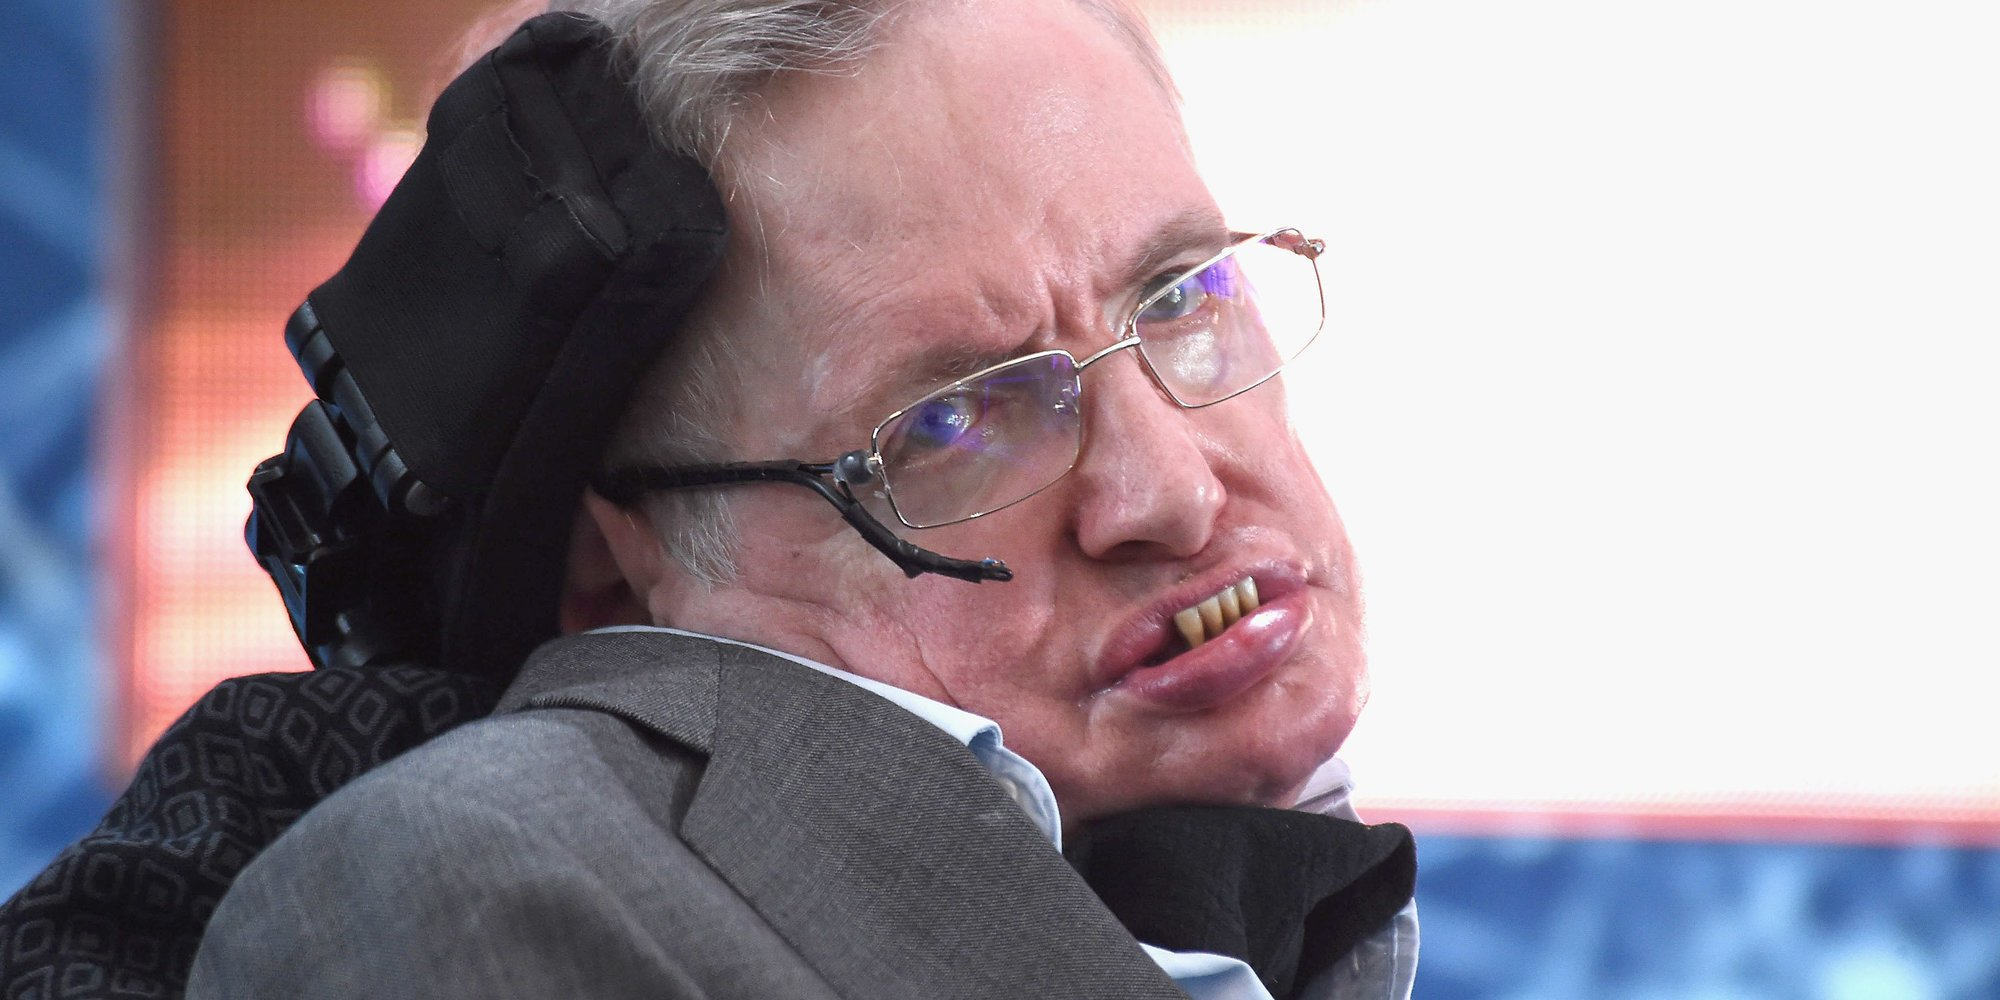 Donald Trump's anti-science agenda leaves Stephen Hawking feeling unwelcome in the U.S. https://t.co/O1gqbib9US https://t.co/IVAtDL8Se4